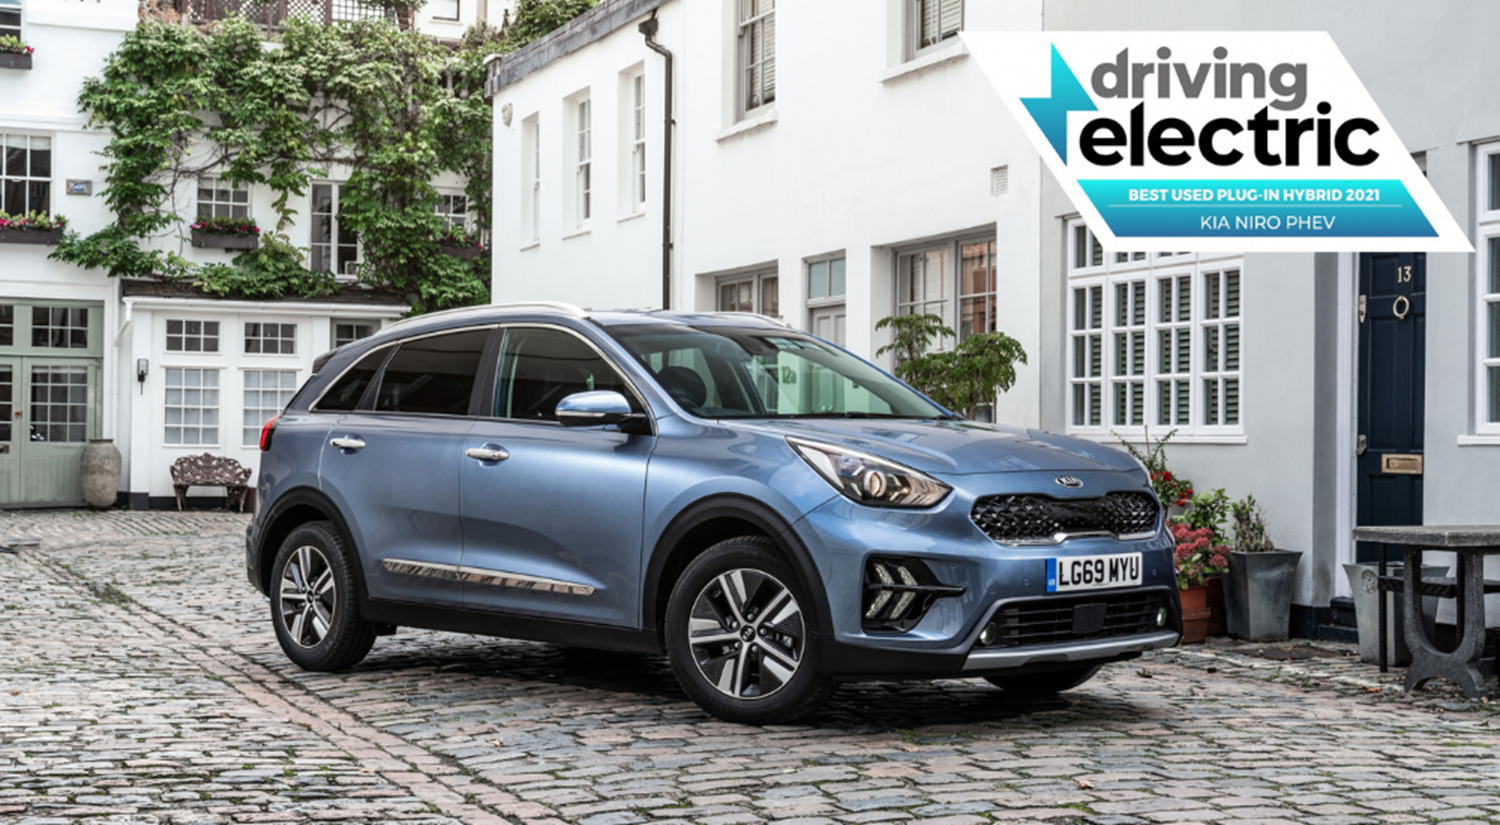 Kia Niro Plug-In Hybrid with DrivingElectric' 'Best Used Plug-in Hybrid' 2021 award